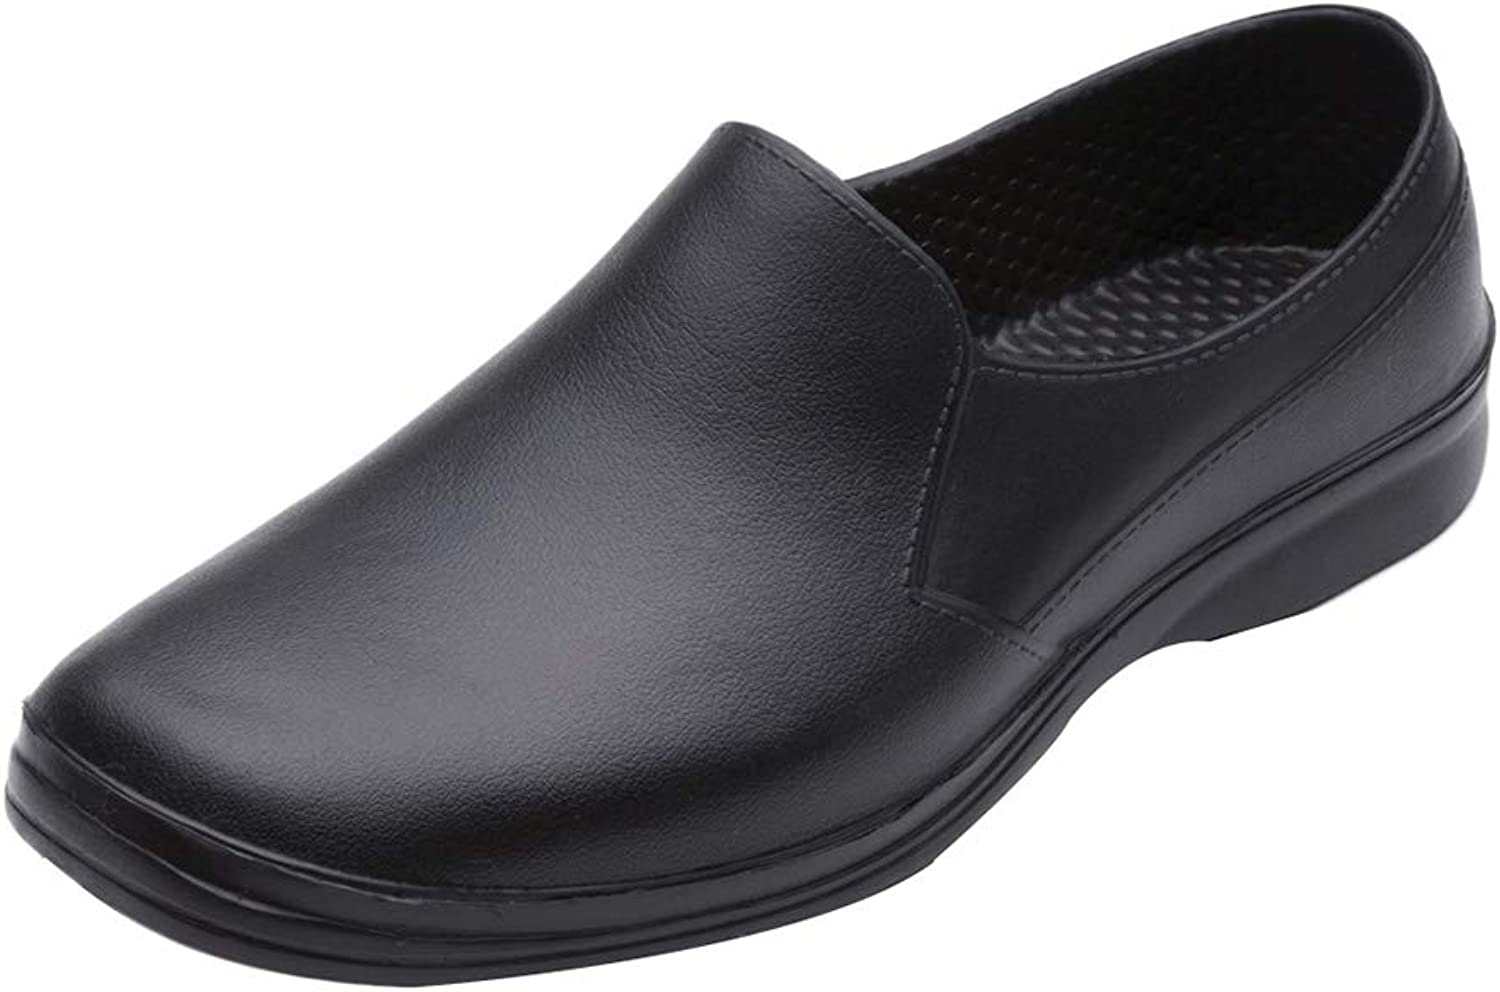 ONCEFIRST Men's and Women's Slip Resistant Chef Clogs Work shoes